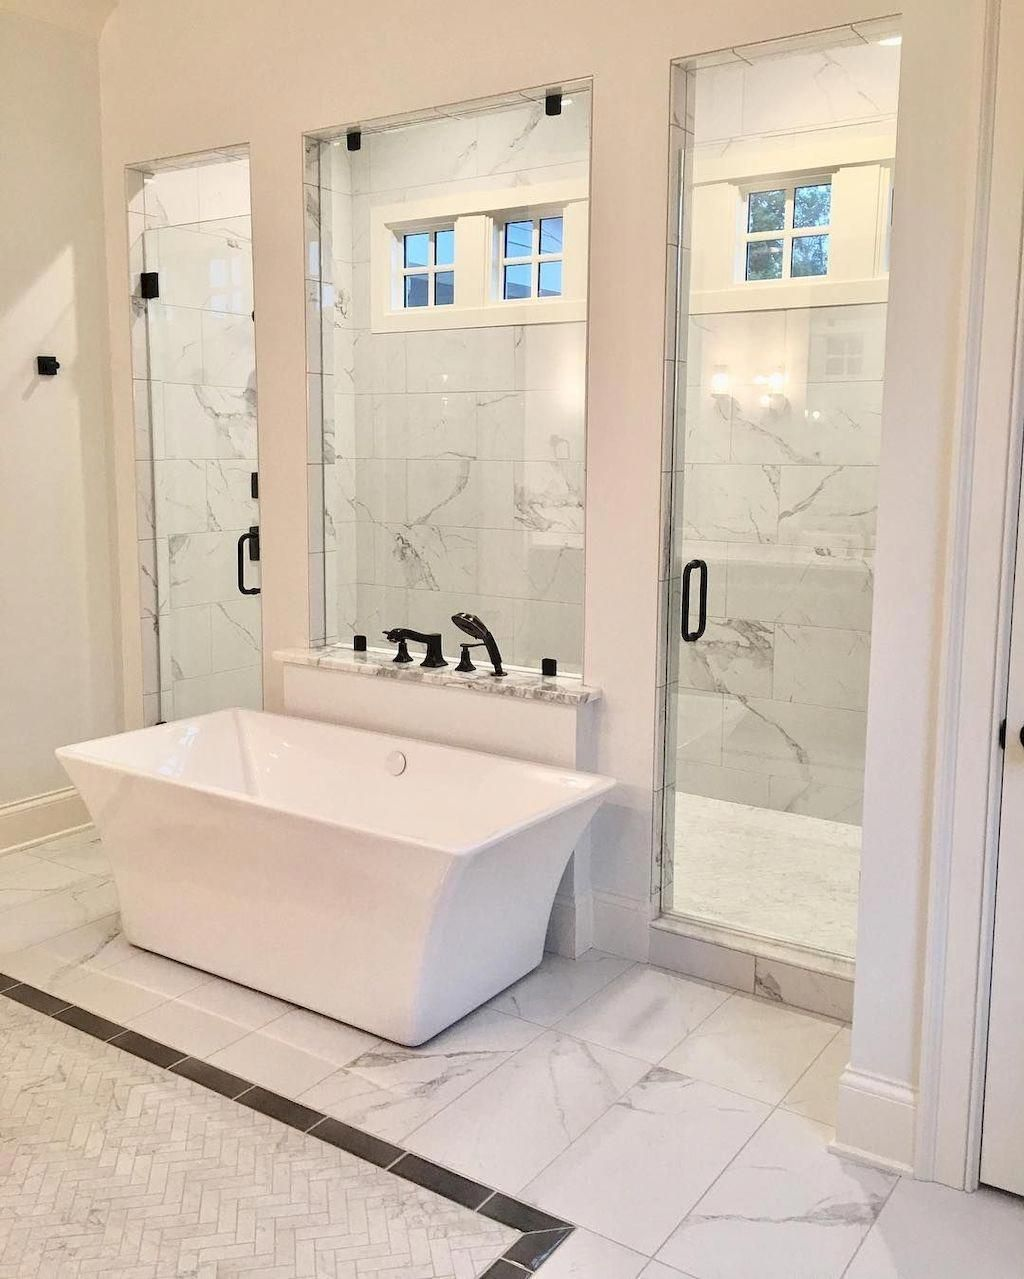 New restroom setup or old restroom remodeling would give you a chance to make the interiors of your restroom bright and airy. #restroomremodel